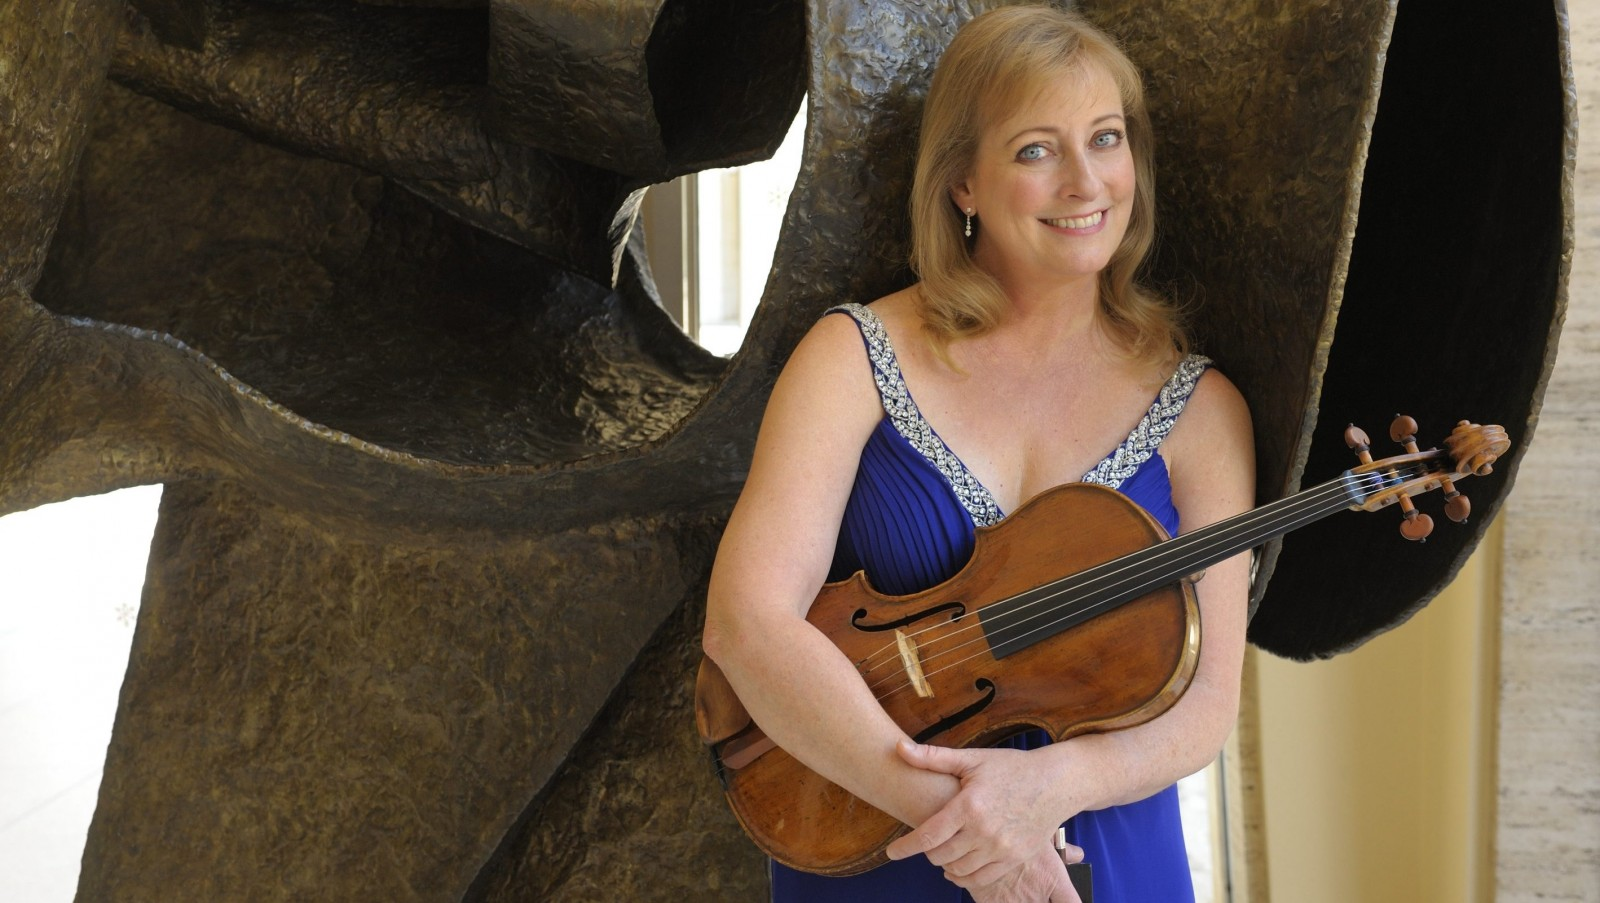 Violist Cynthia Phelps of the New York Philharmonic will perform at the University at Buffalo on Feb. 5.